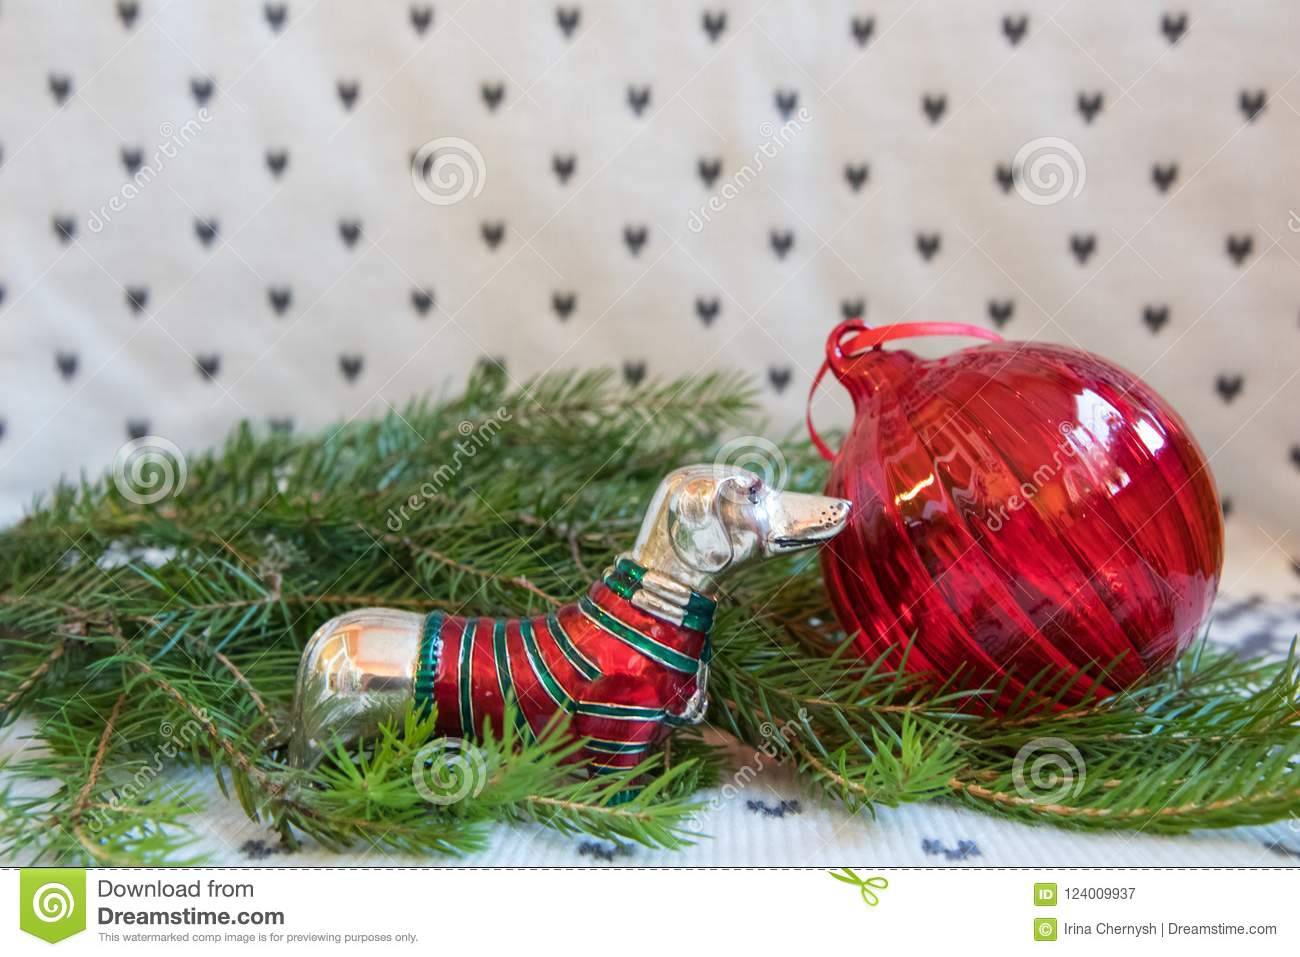 Red Christmas ball and dachshund in red-green sweater on branch of Christmas tree